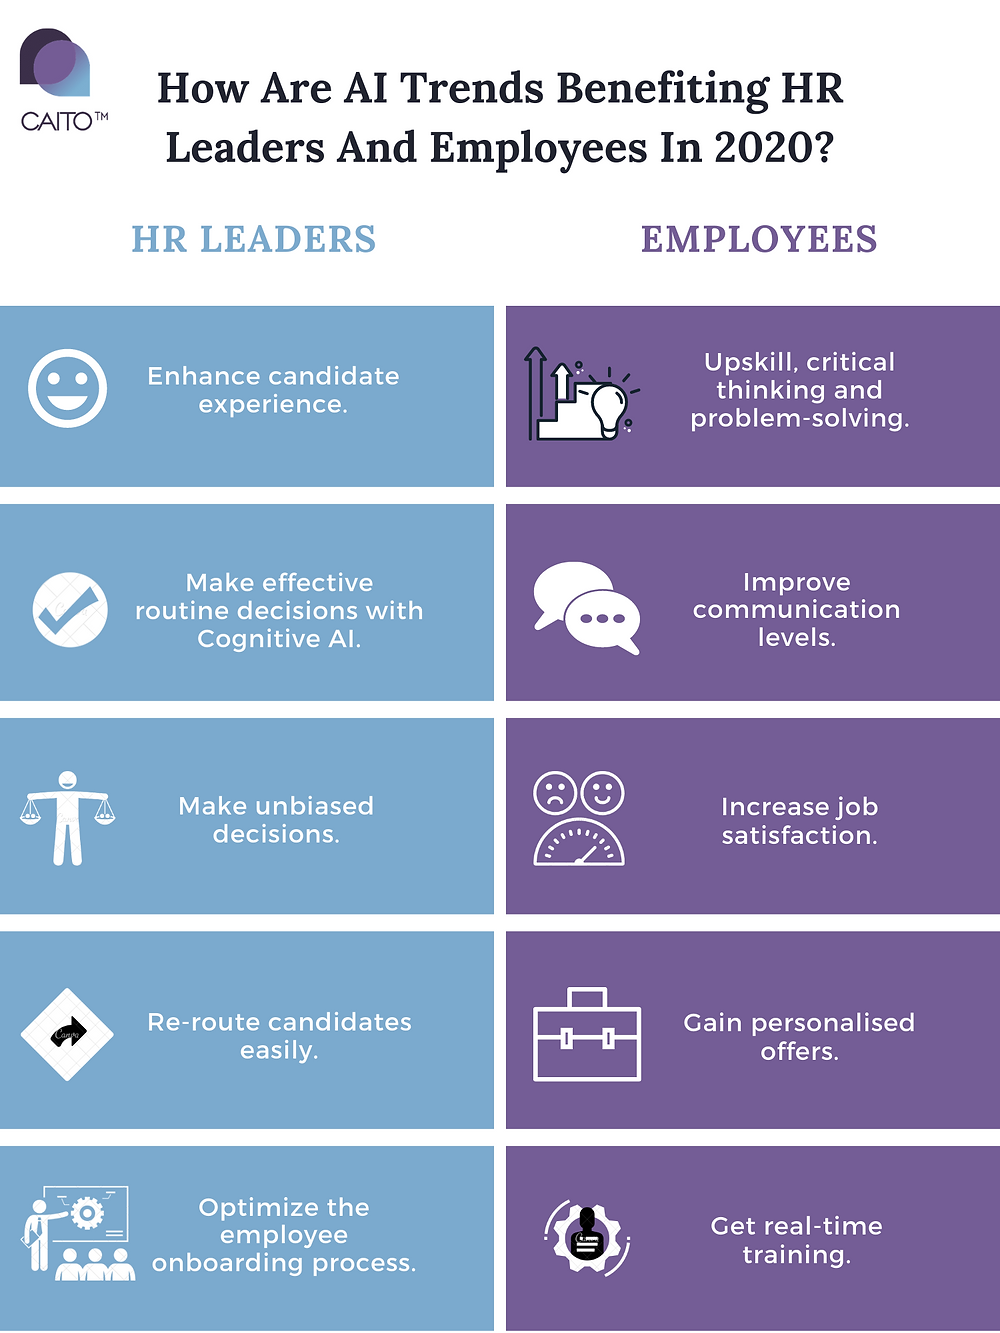 AI can help enhance candidate experience, make effective routine decisions, make unbiased decisions, re-route candidates easily and optimize the employee onboarding process.